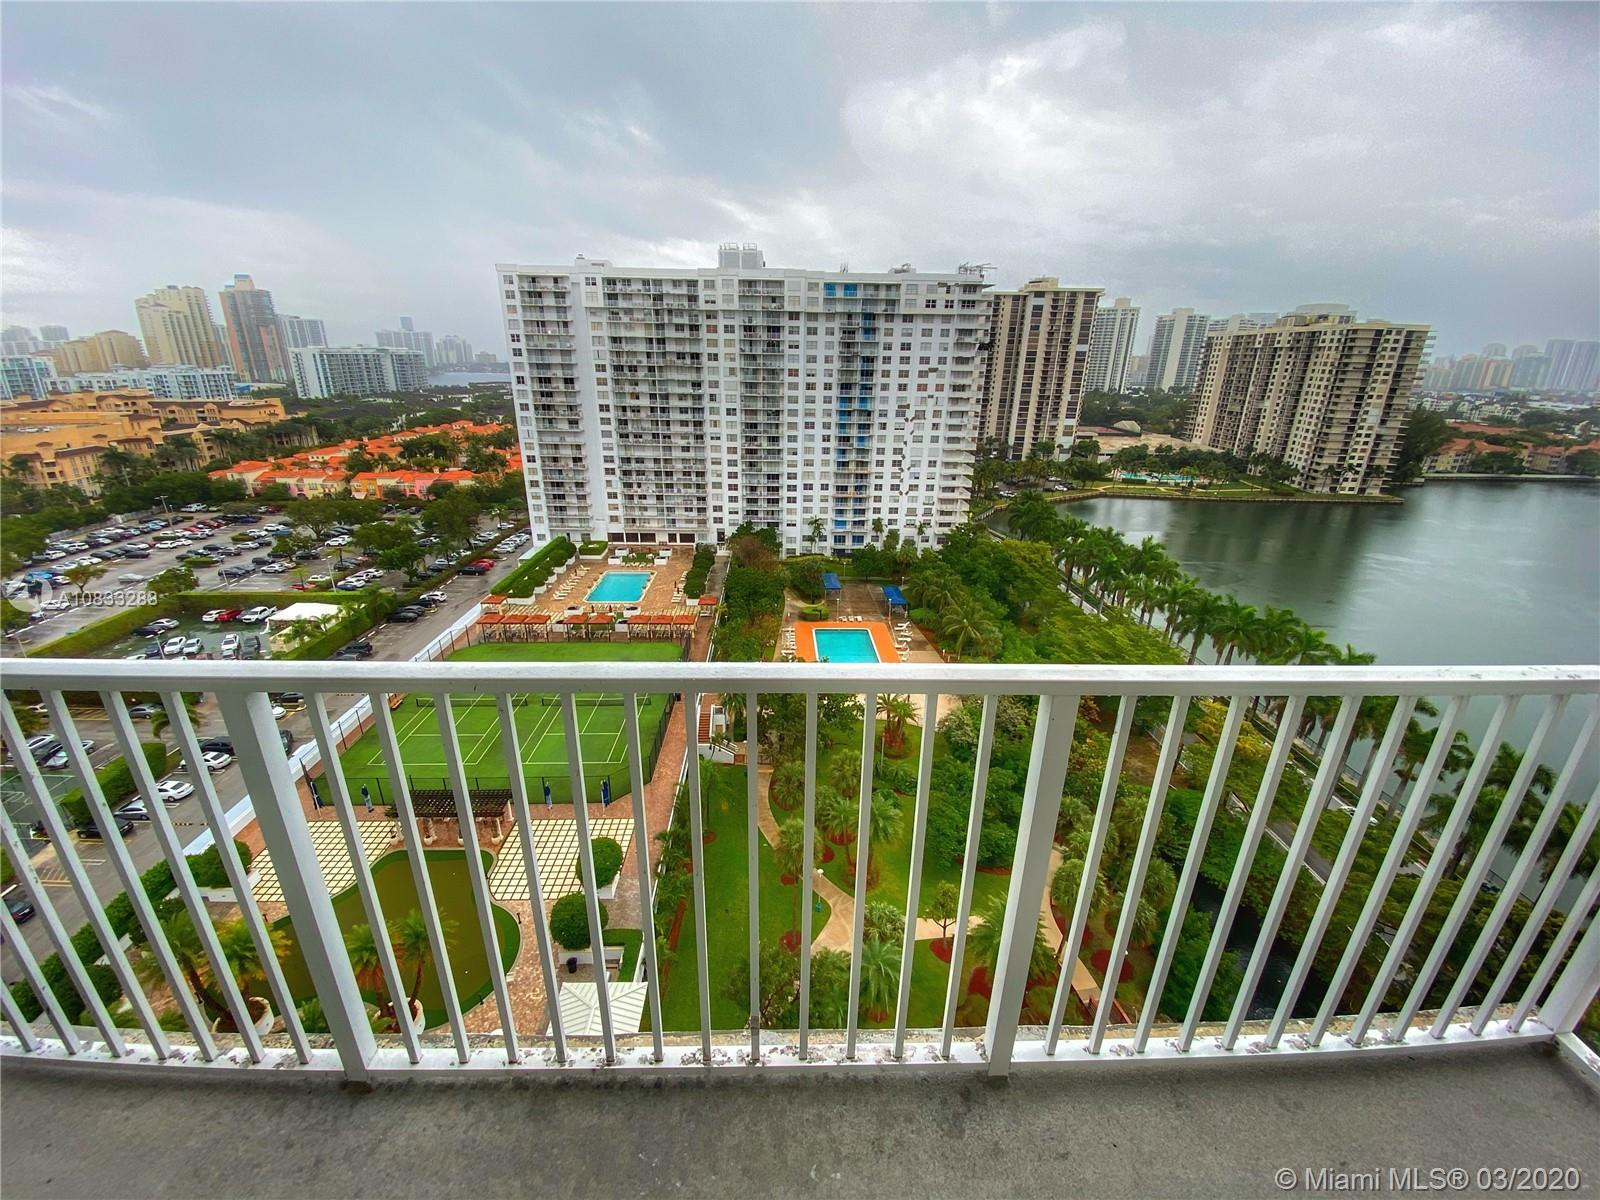 Apartment 1 bed/ 1.5 bath on the 17th floor with a spectacular view.Just a TLC on kitchen and bathro